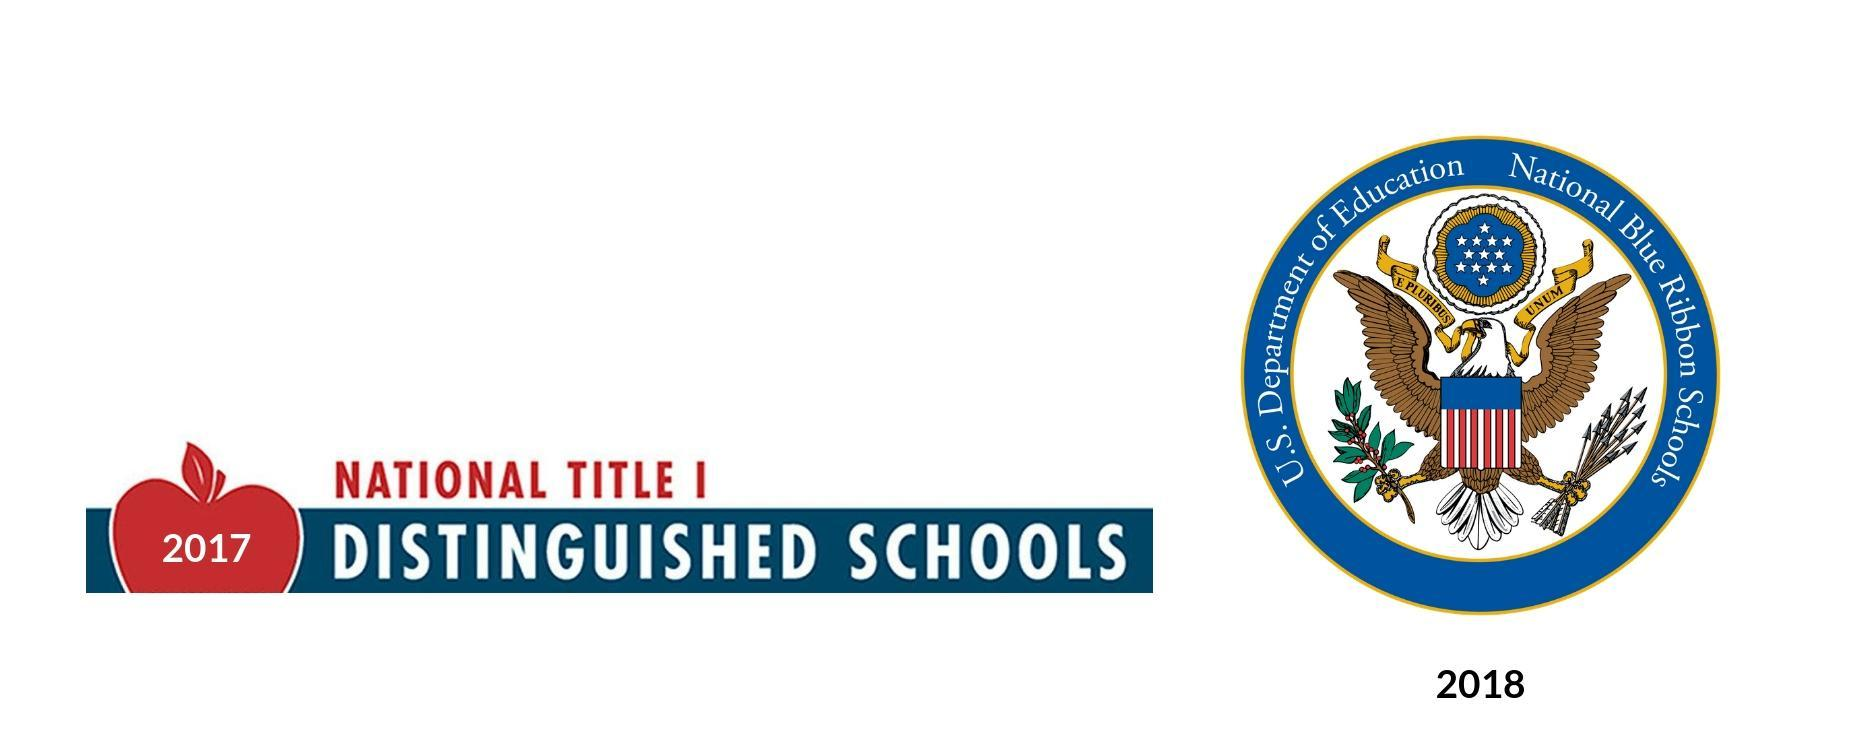 2017 Nation Title I Distinguished School and 2018 U.S. Department of Education National Blue Ribbon School.